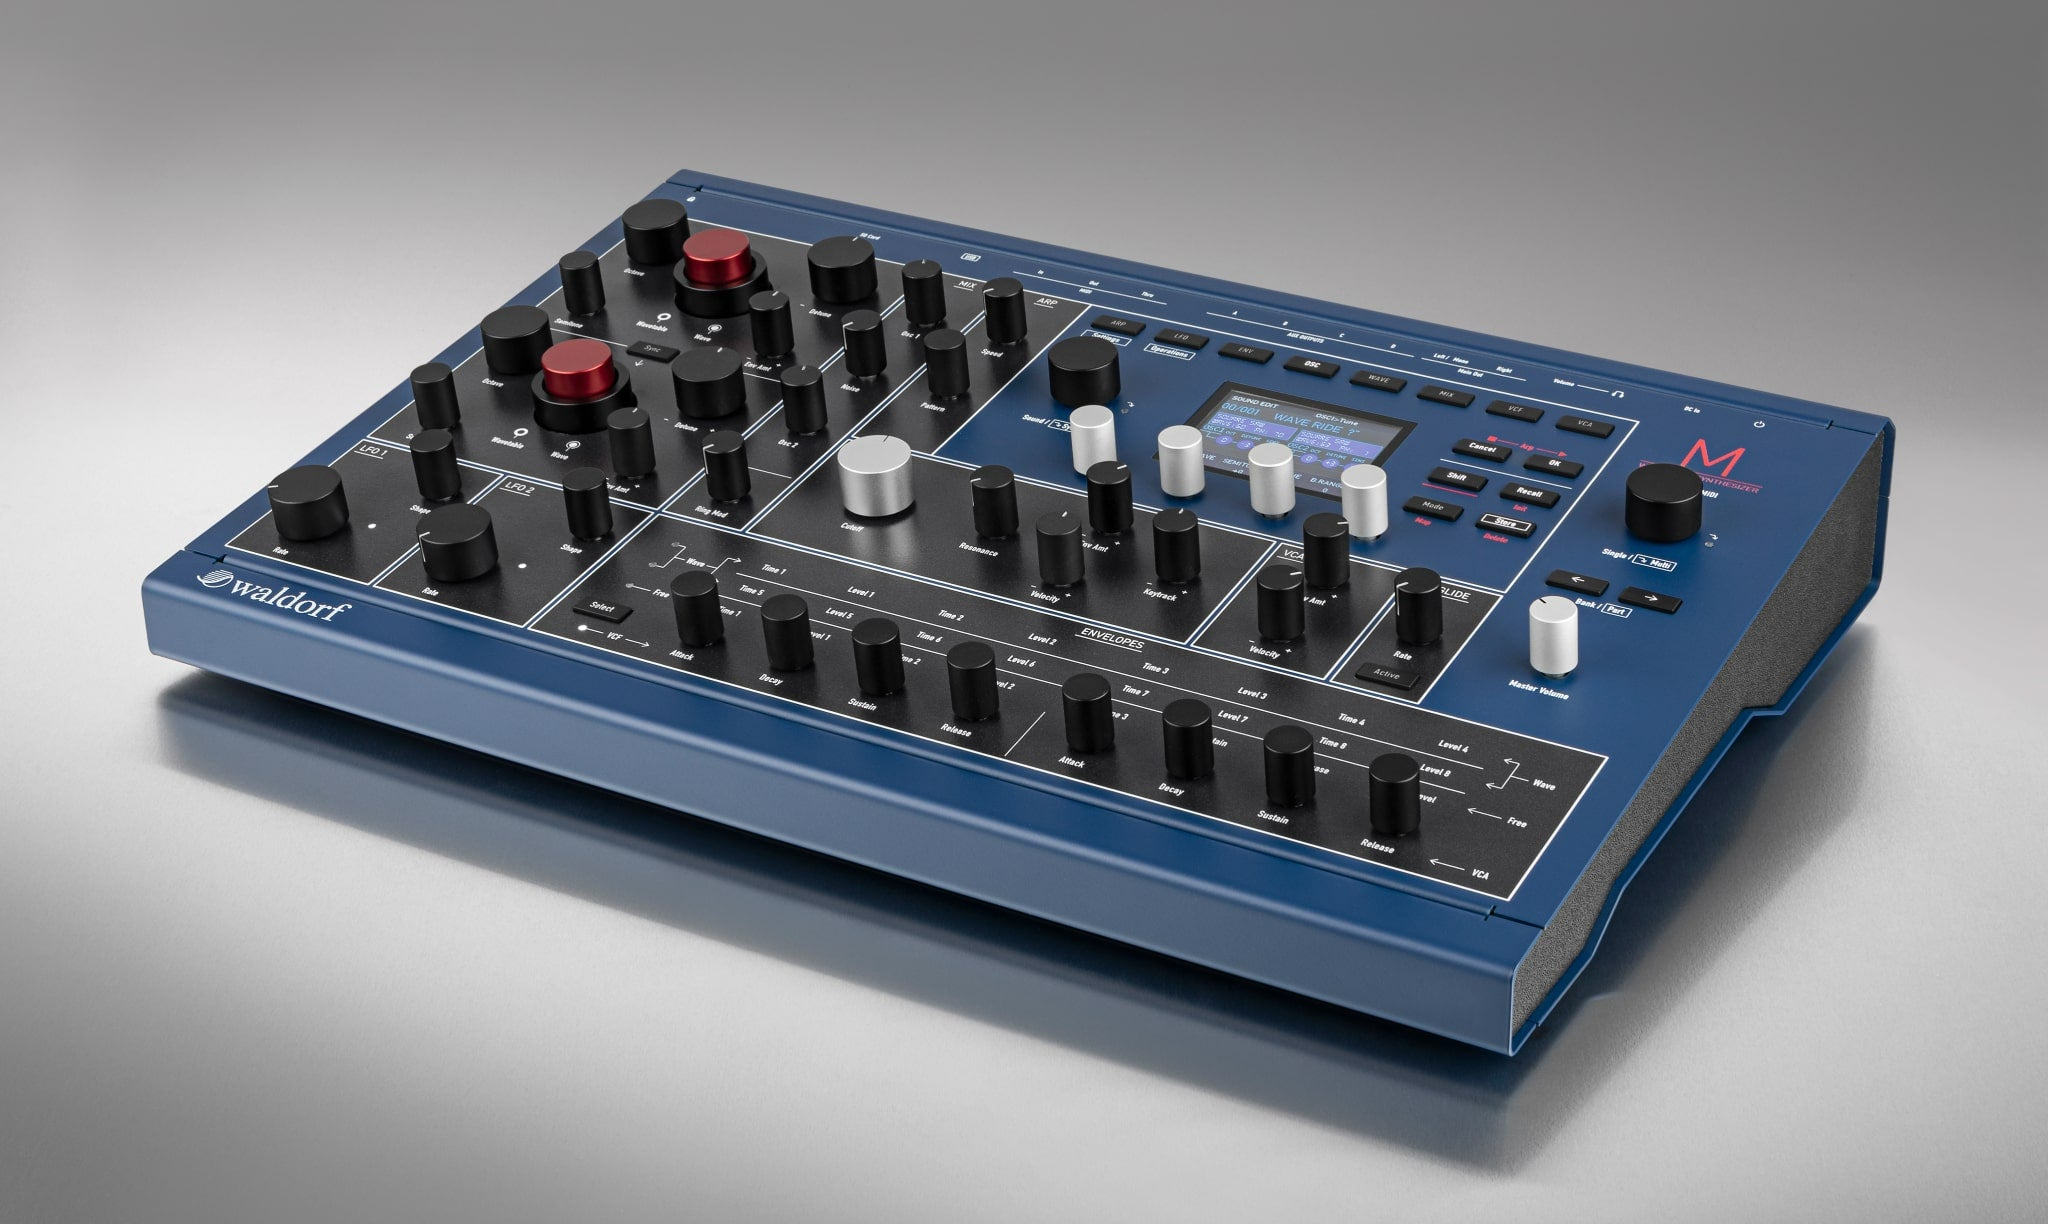 Waldorf M wavetable synthesizer front